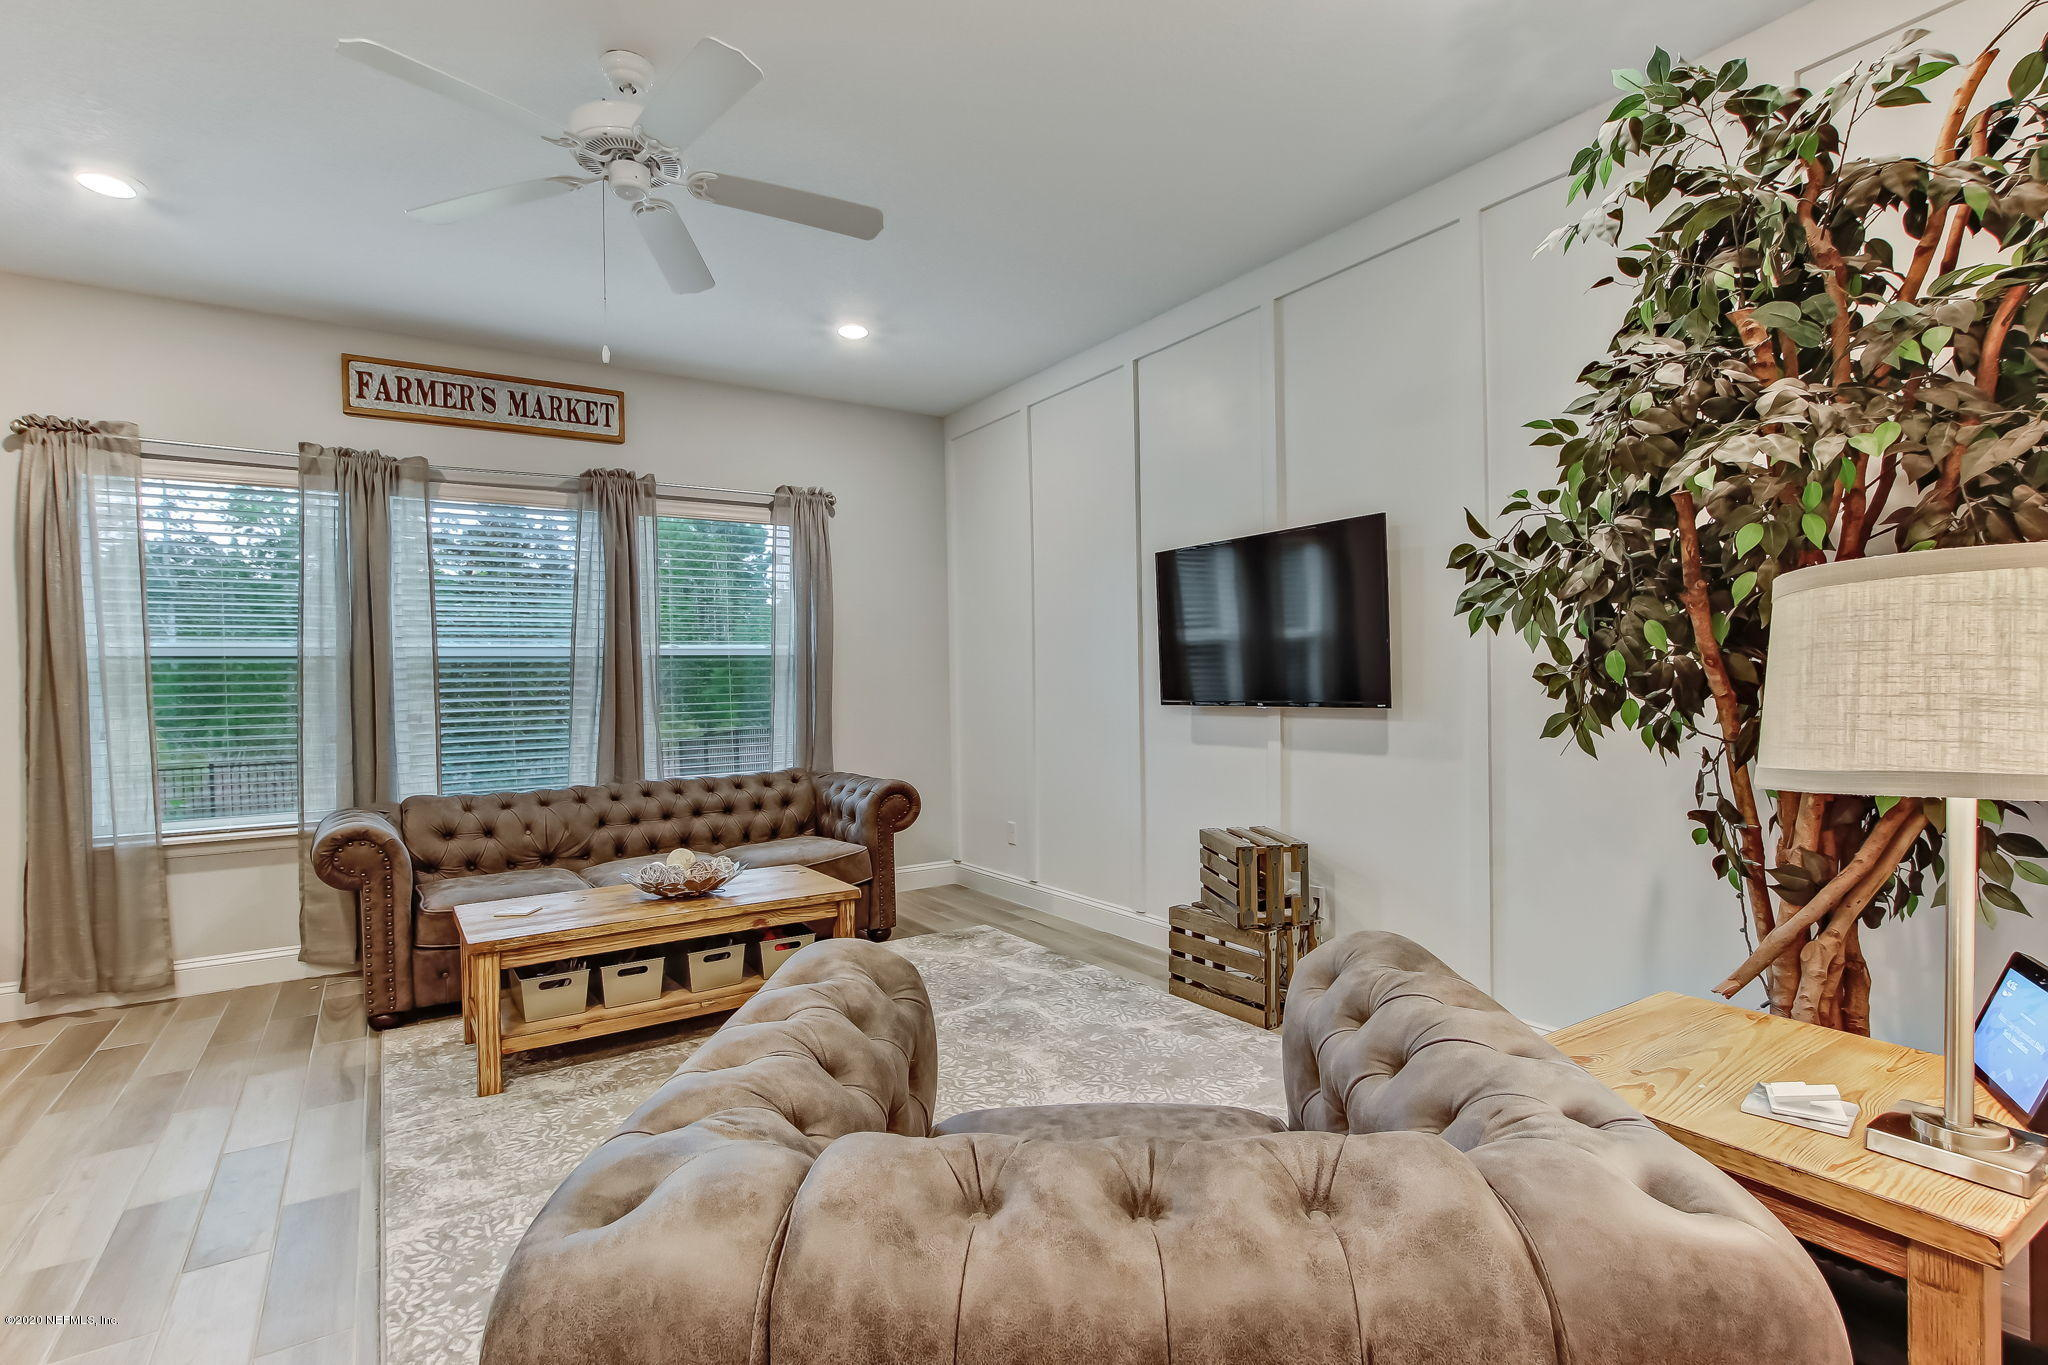 144 CLIFTON BAY, ST JOHNS, FLORIDA 32259, 3 Bedrooms Bedrooms, ,2 BathroomsBathrooms,Residential,For sale,CLIFTON BAY,1081962